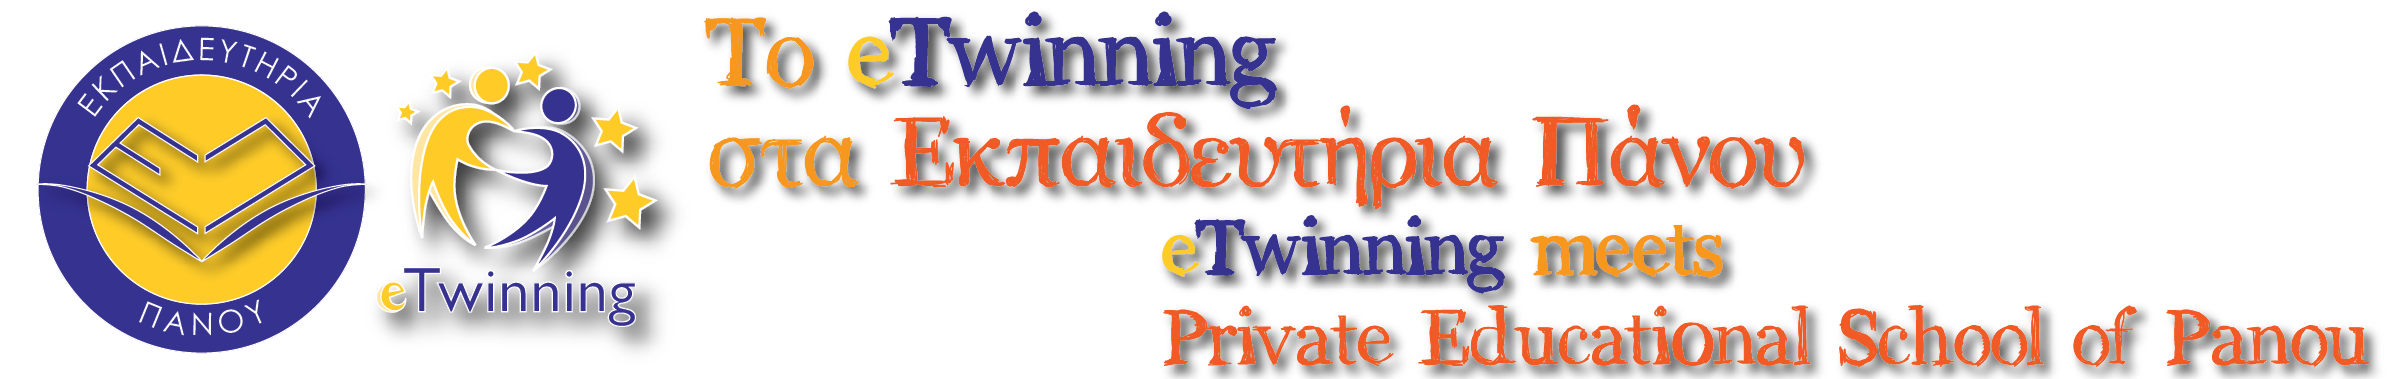 eTwinning meets Private Educational School of Panou